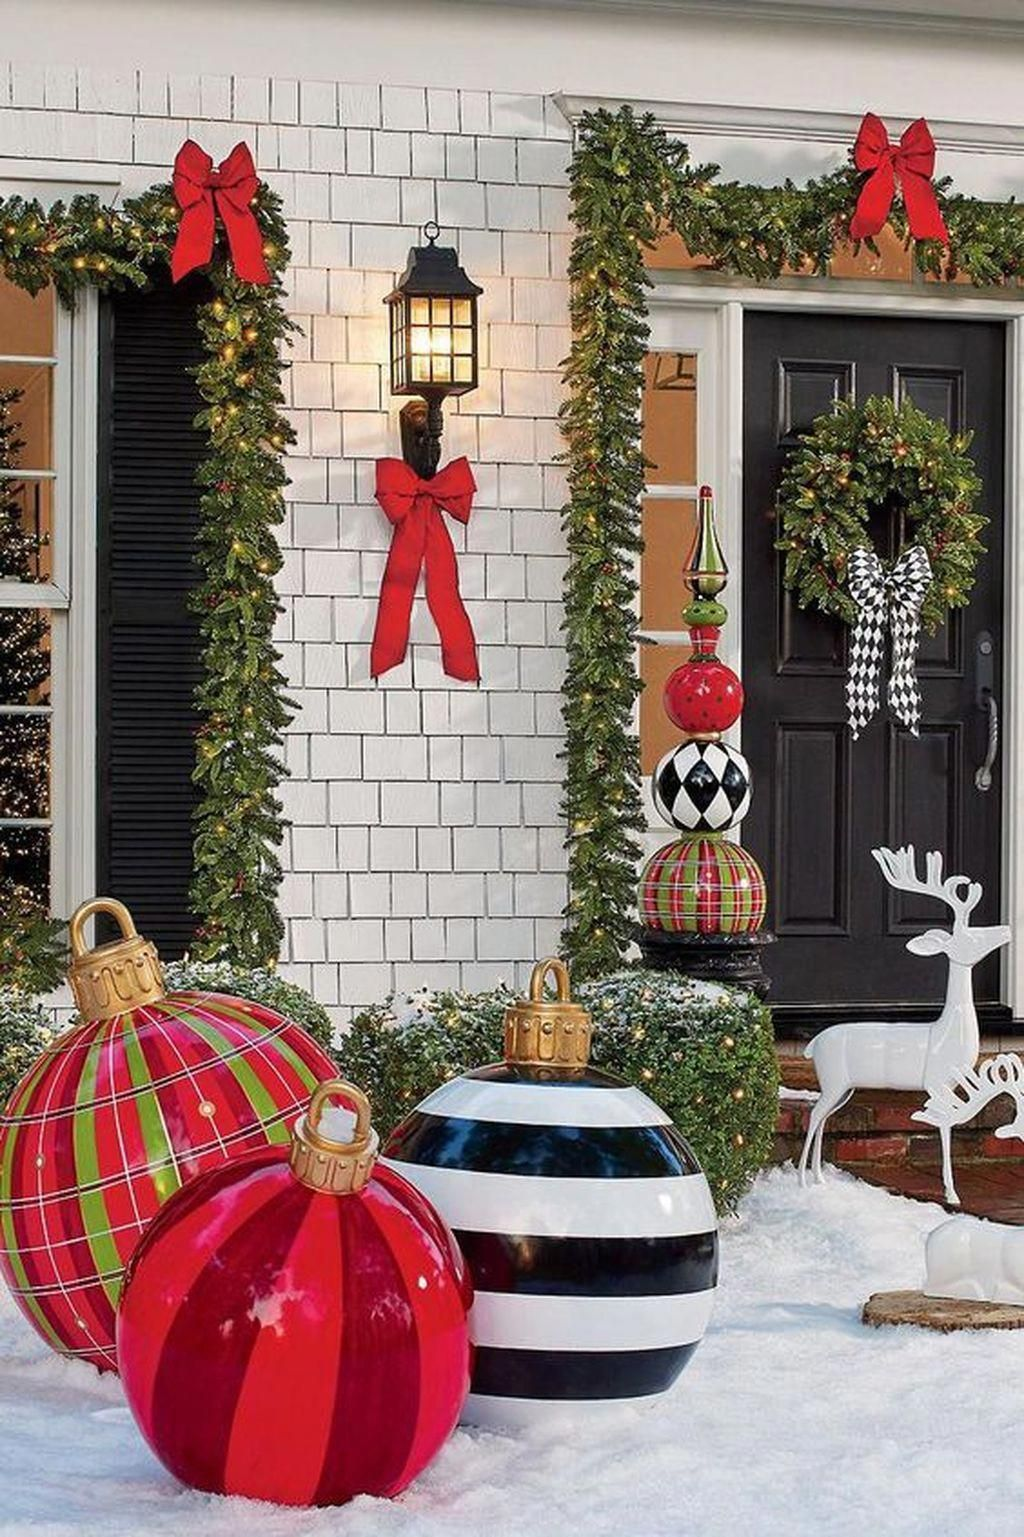 Christmas Decorations Diy Outdoor